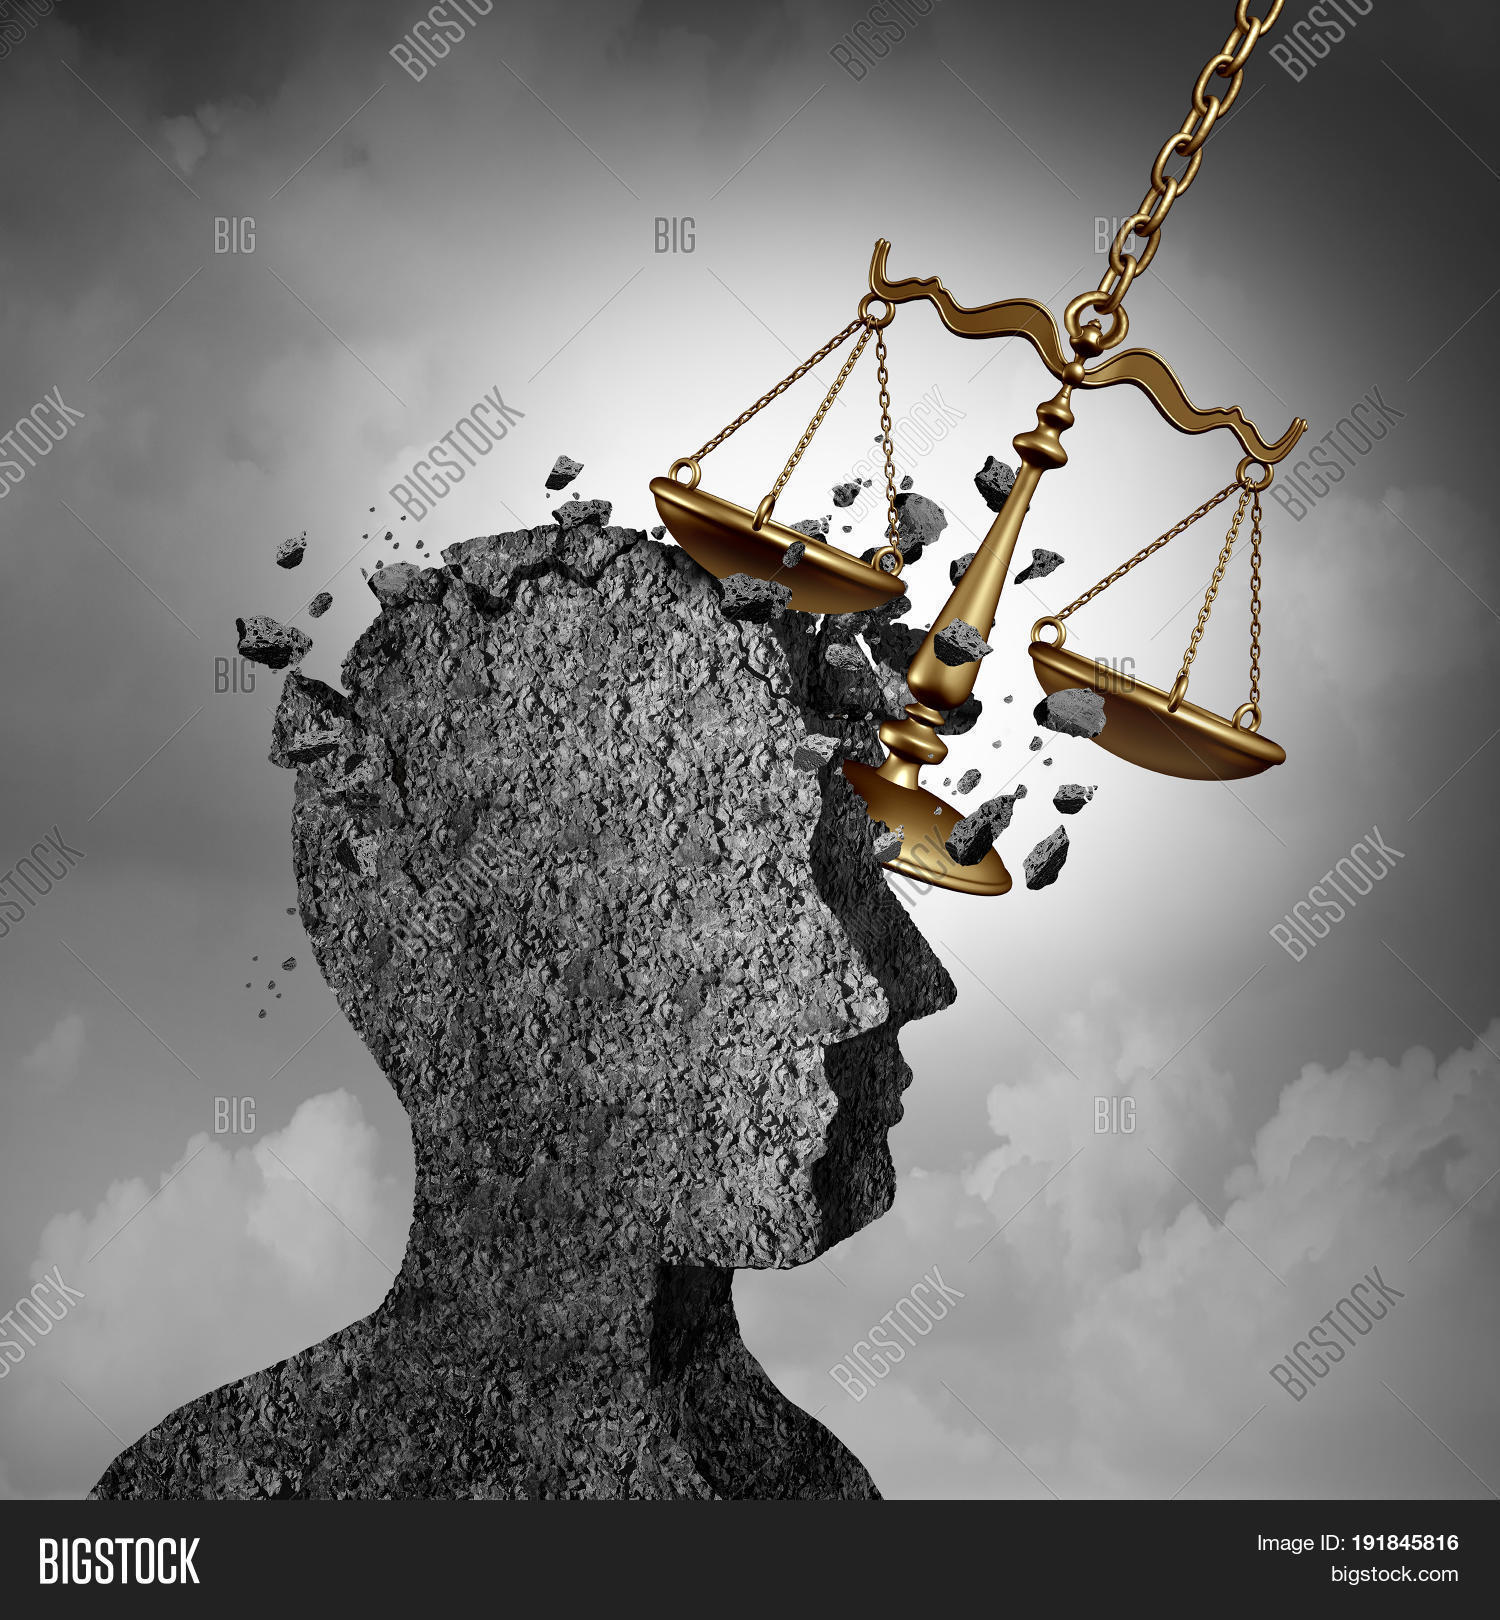 Litigation lawsuit stress concept image photo bigstock litigation and lawsuit stress concept as a lawyer or attorney metaphor and plaintiff anxiety symbol as biocorpaavc Choice Image